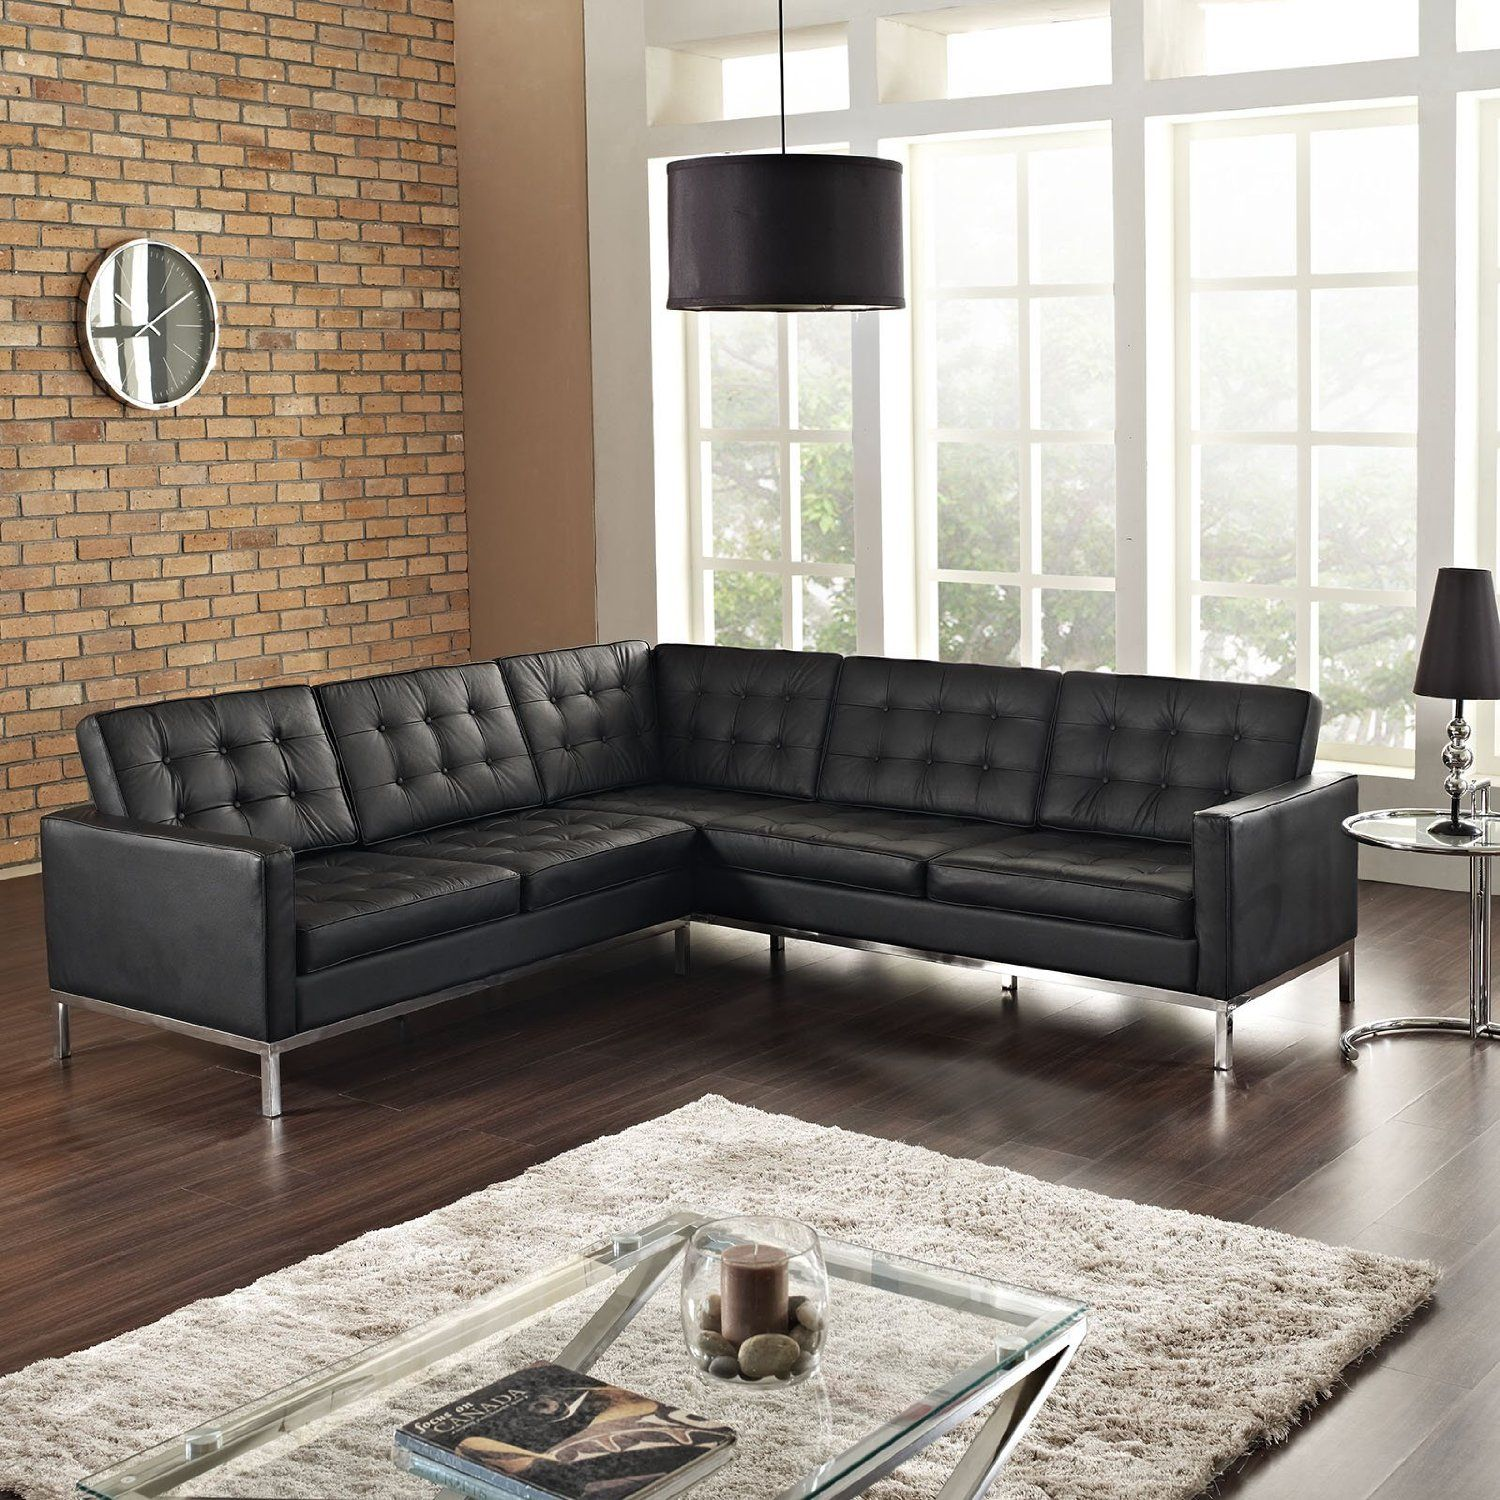 large l sofas white sectional sectionals sofa shaped size leather cheap couch couches of